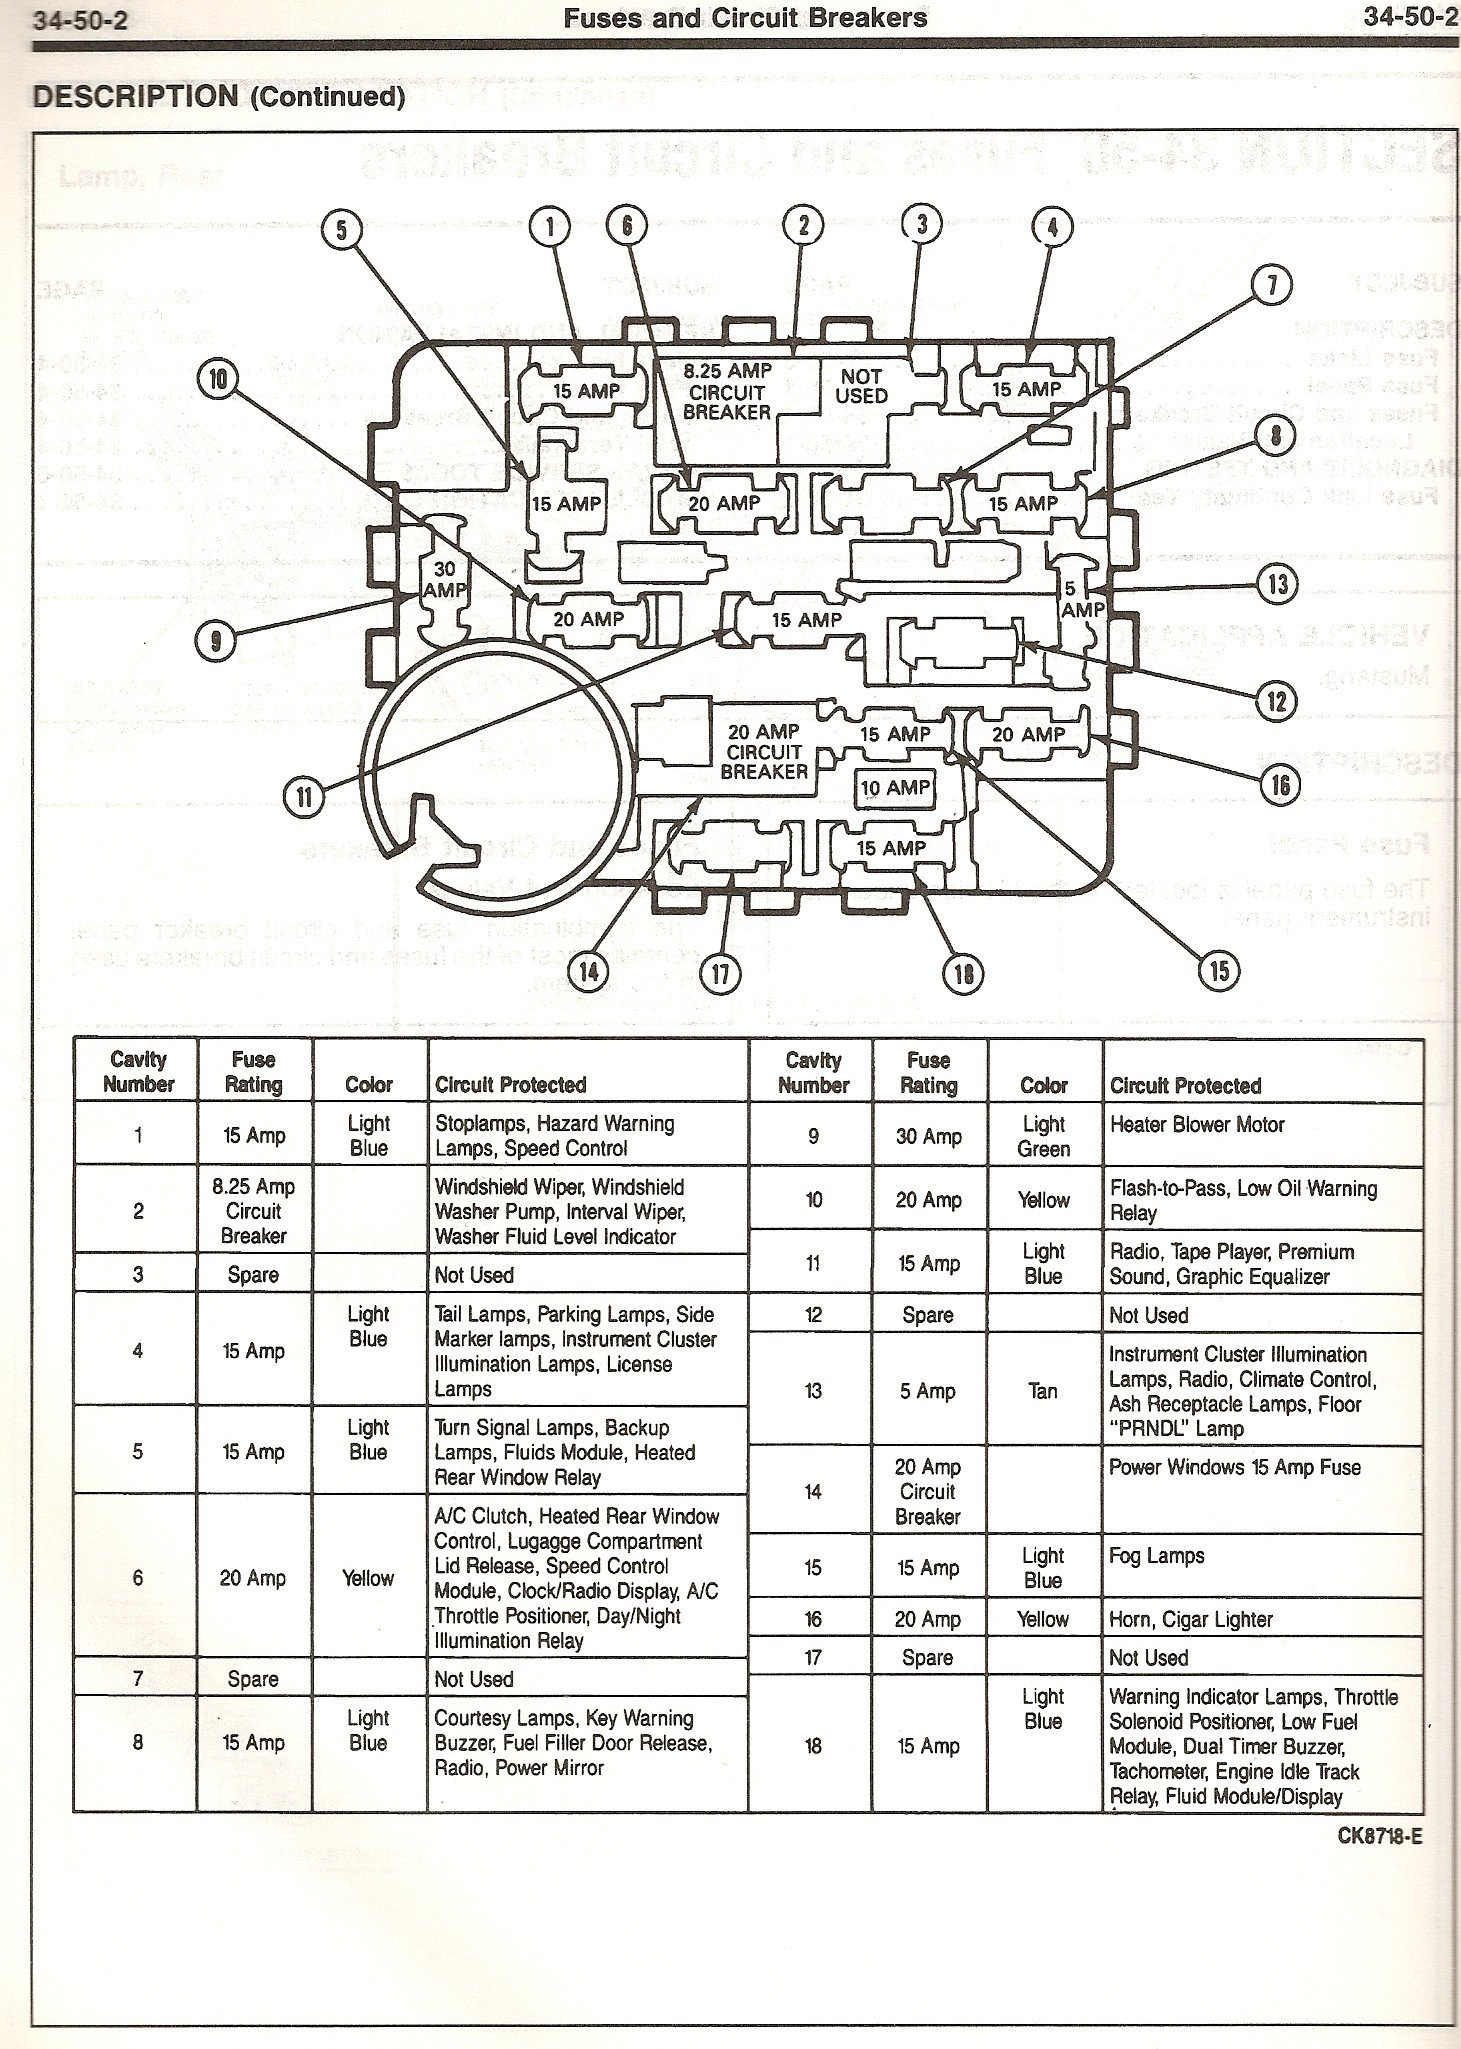 1985 Mustang Fuse Box Diagram